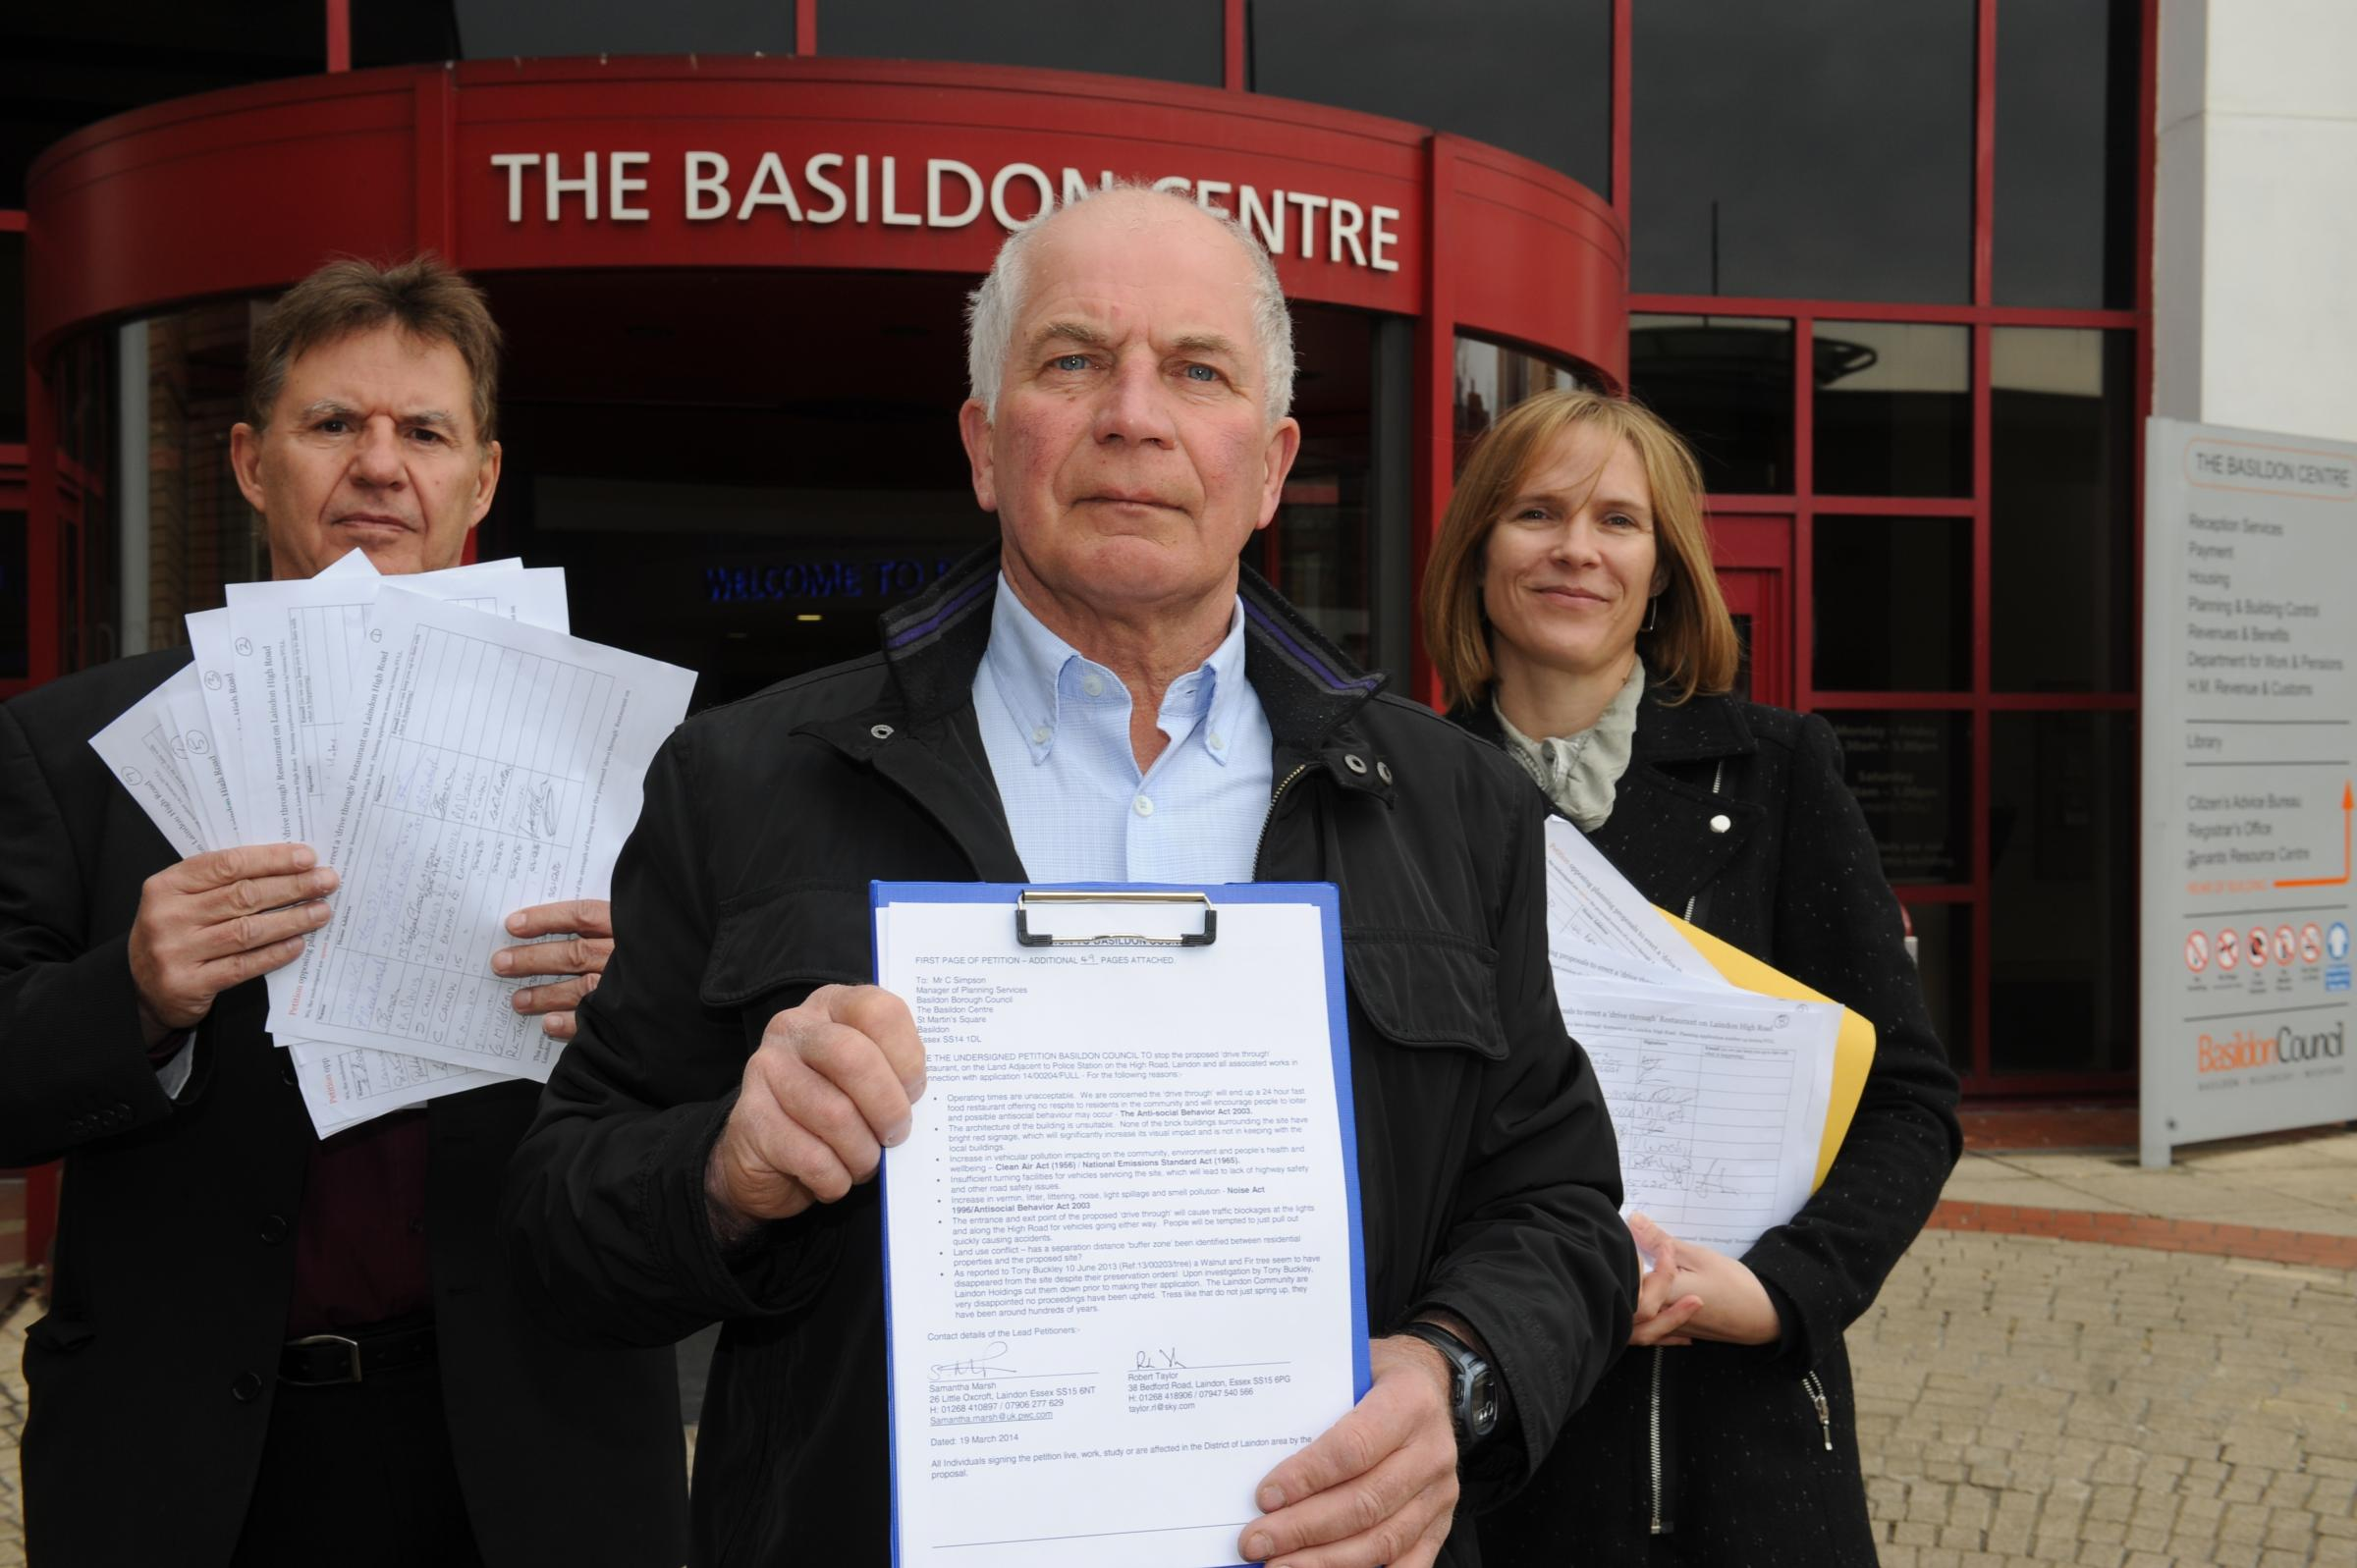 Protesters – John Scarola, Bob Taylor and Samantha Marsh with their petition